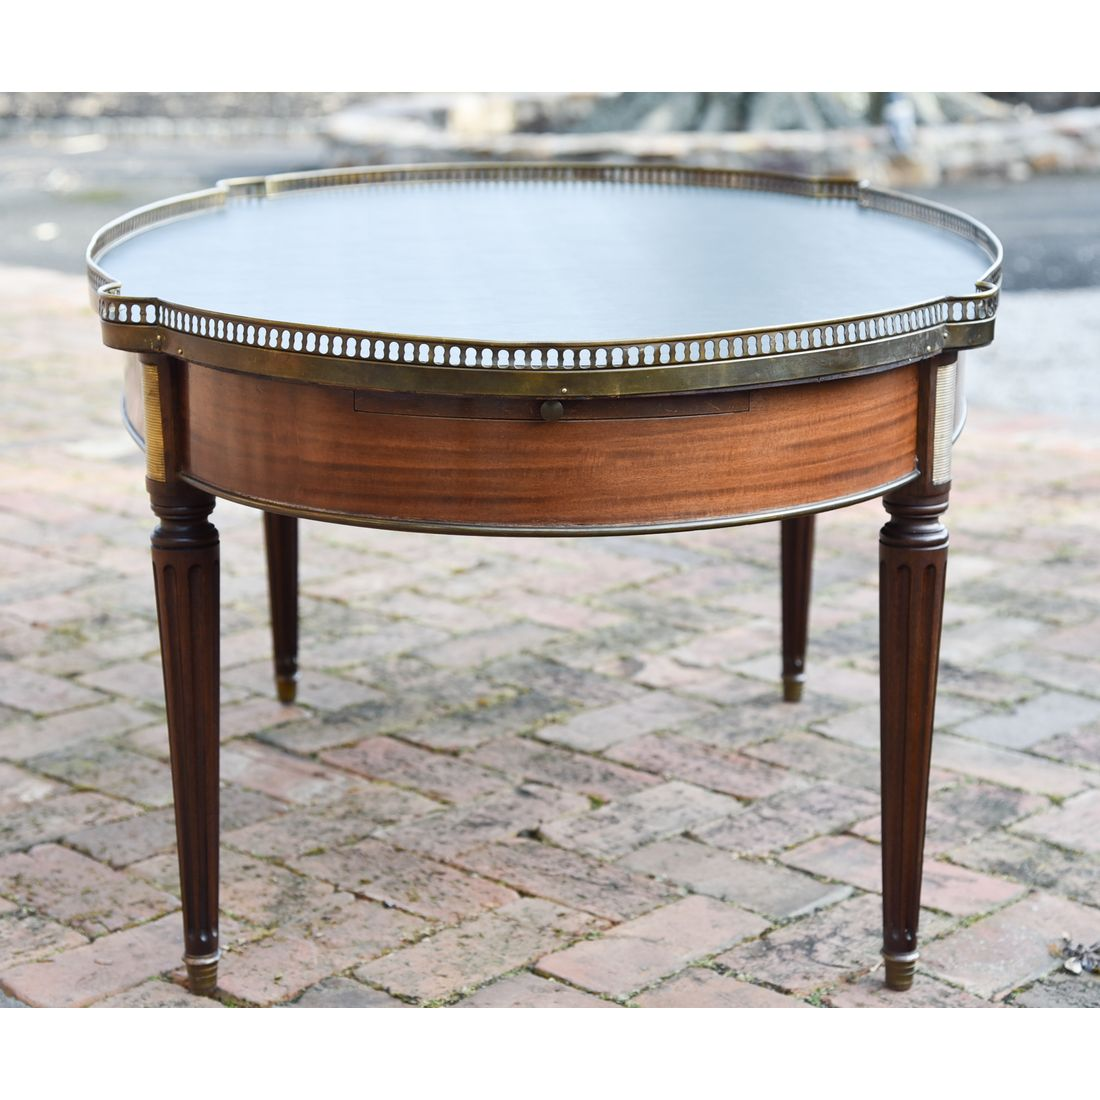 French Oval Coffee Table: French Louis XVI Style Oval Leather Top Mahogany Cocktail